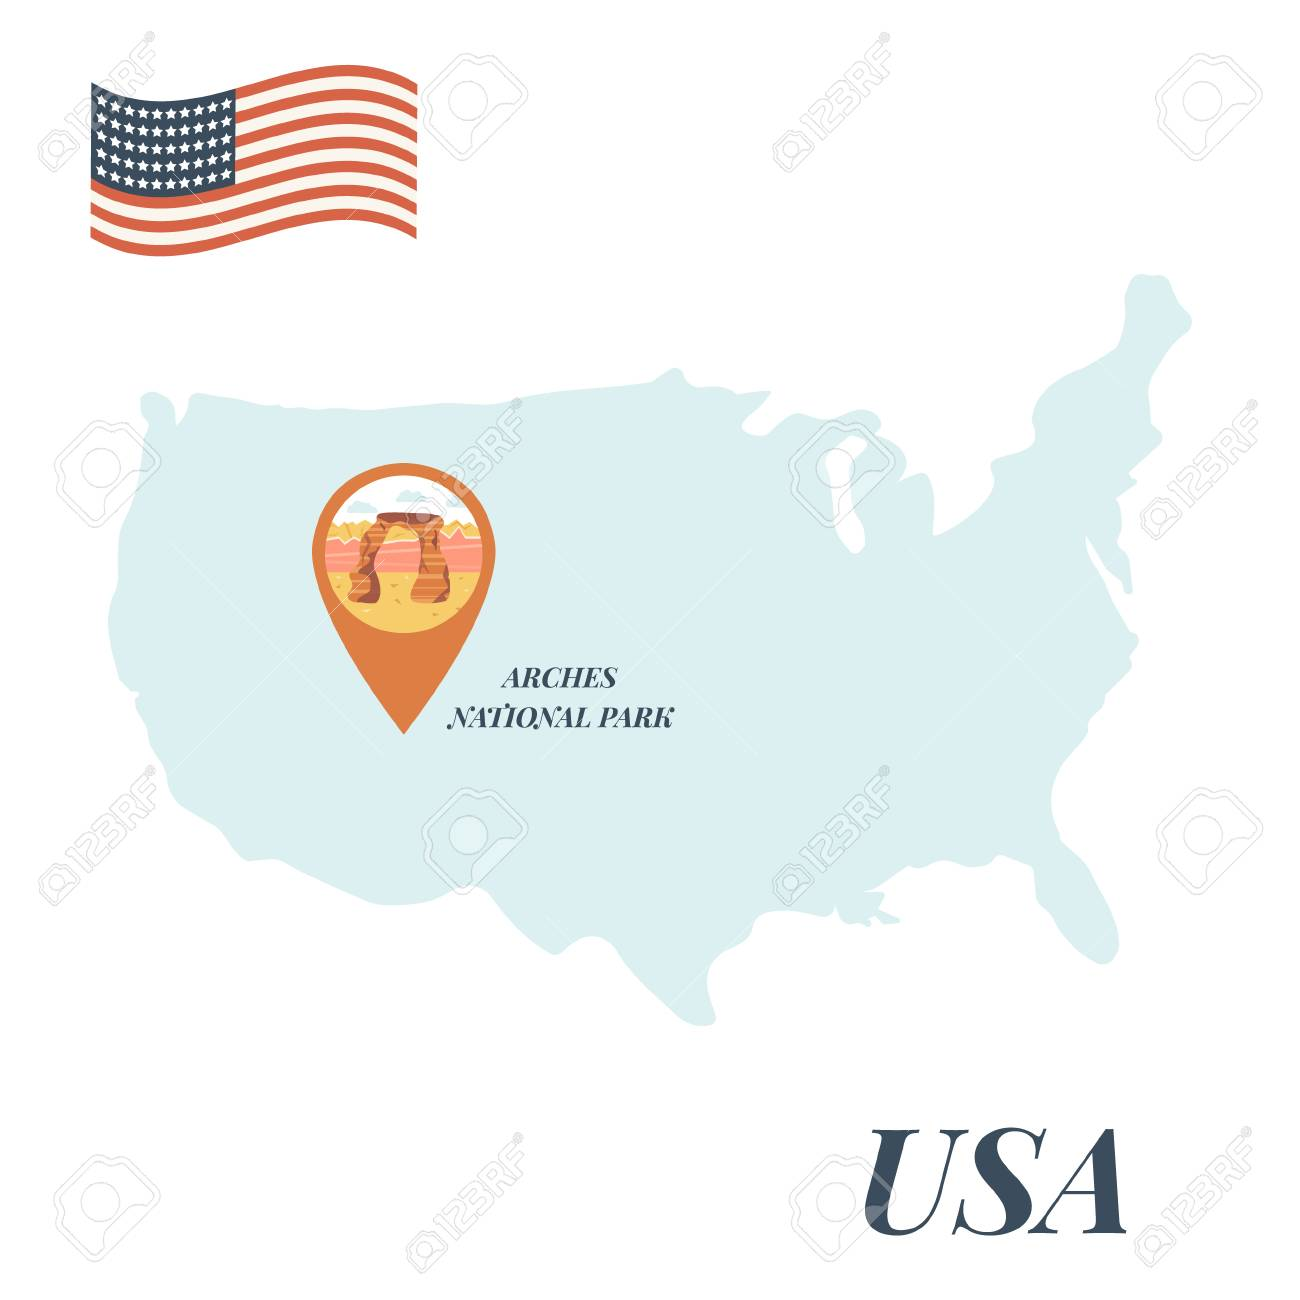 USA map with Arches National Park pin travel concept vector illustration.